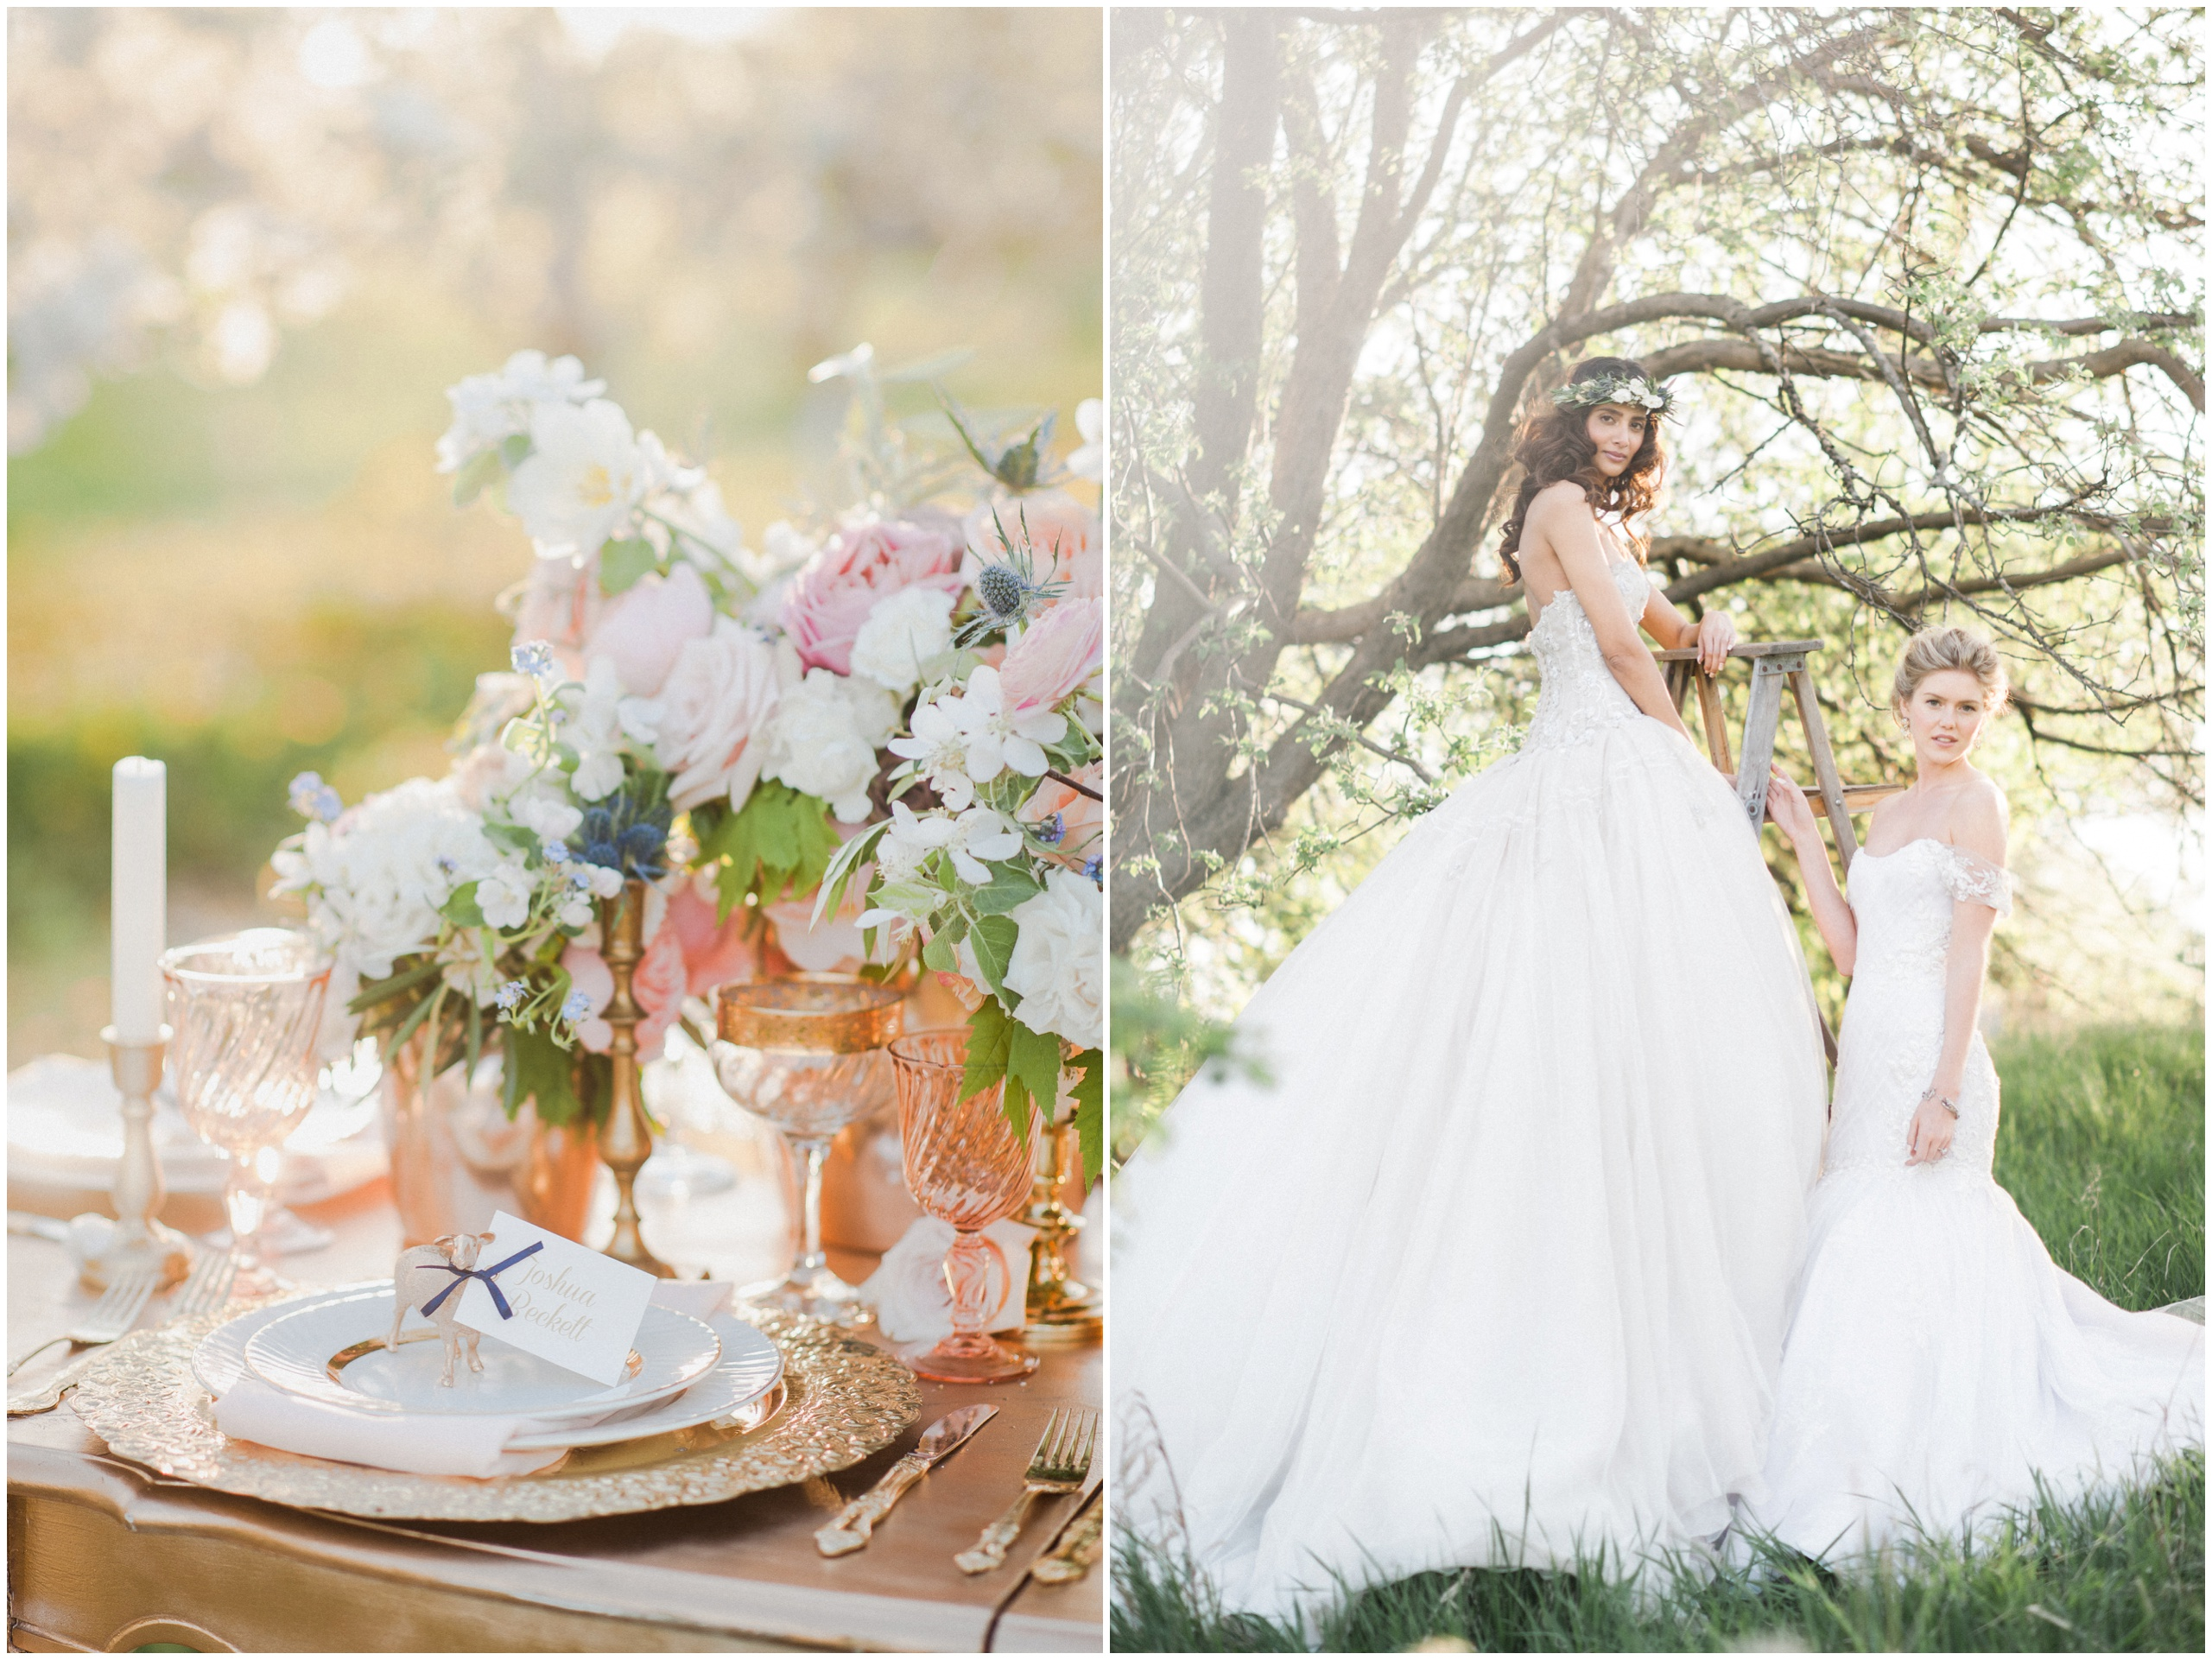 Wedding Inspiration: Bride wearing flower crown and Ines Di Santo gown on rustic wooden ladder; gold accented wedding table.